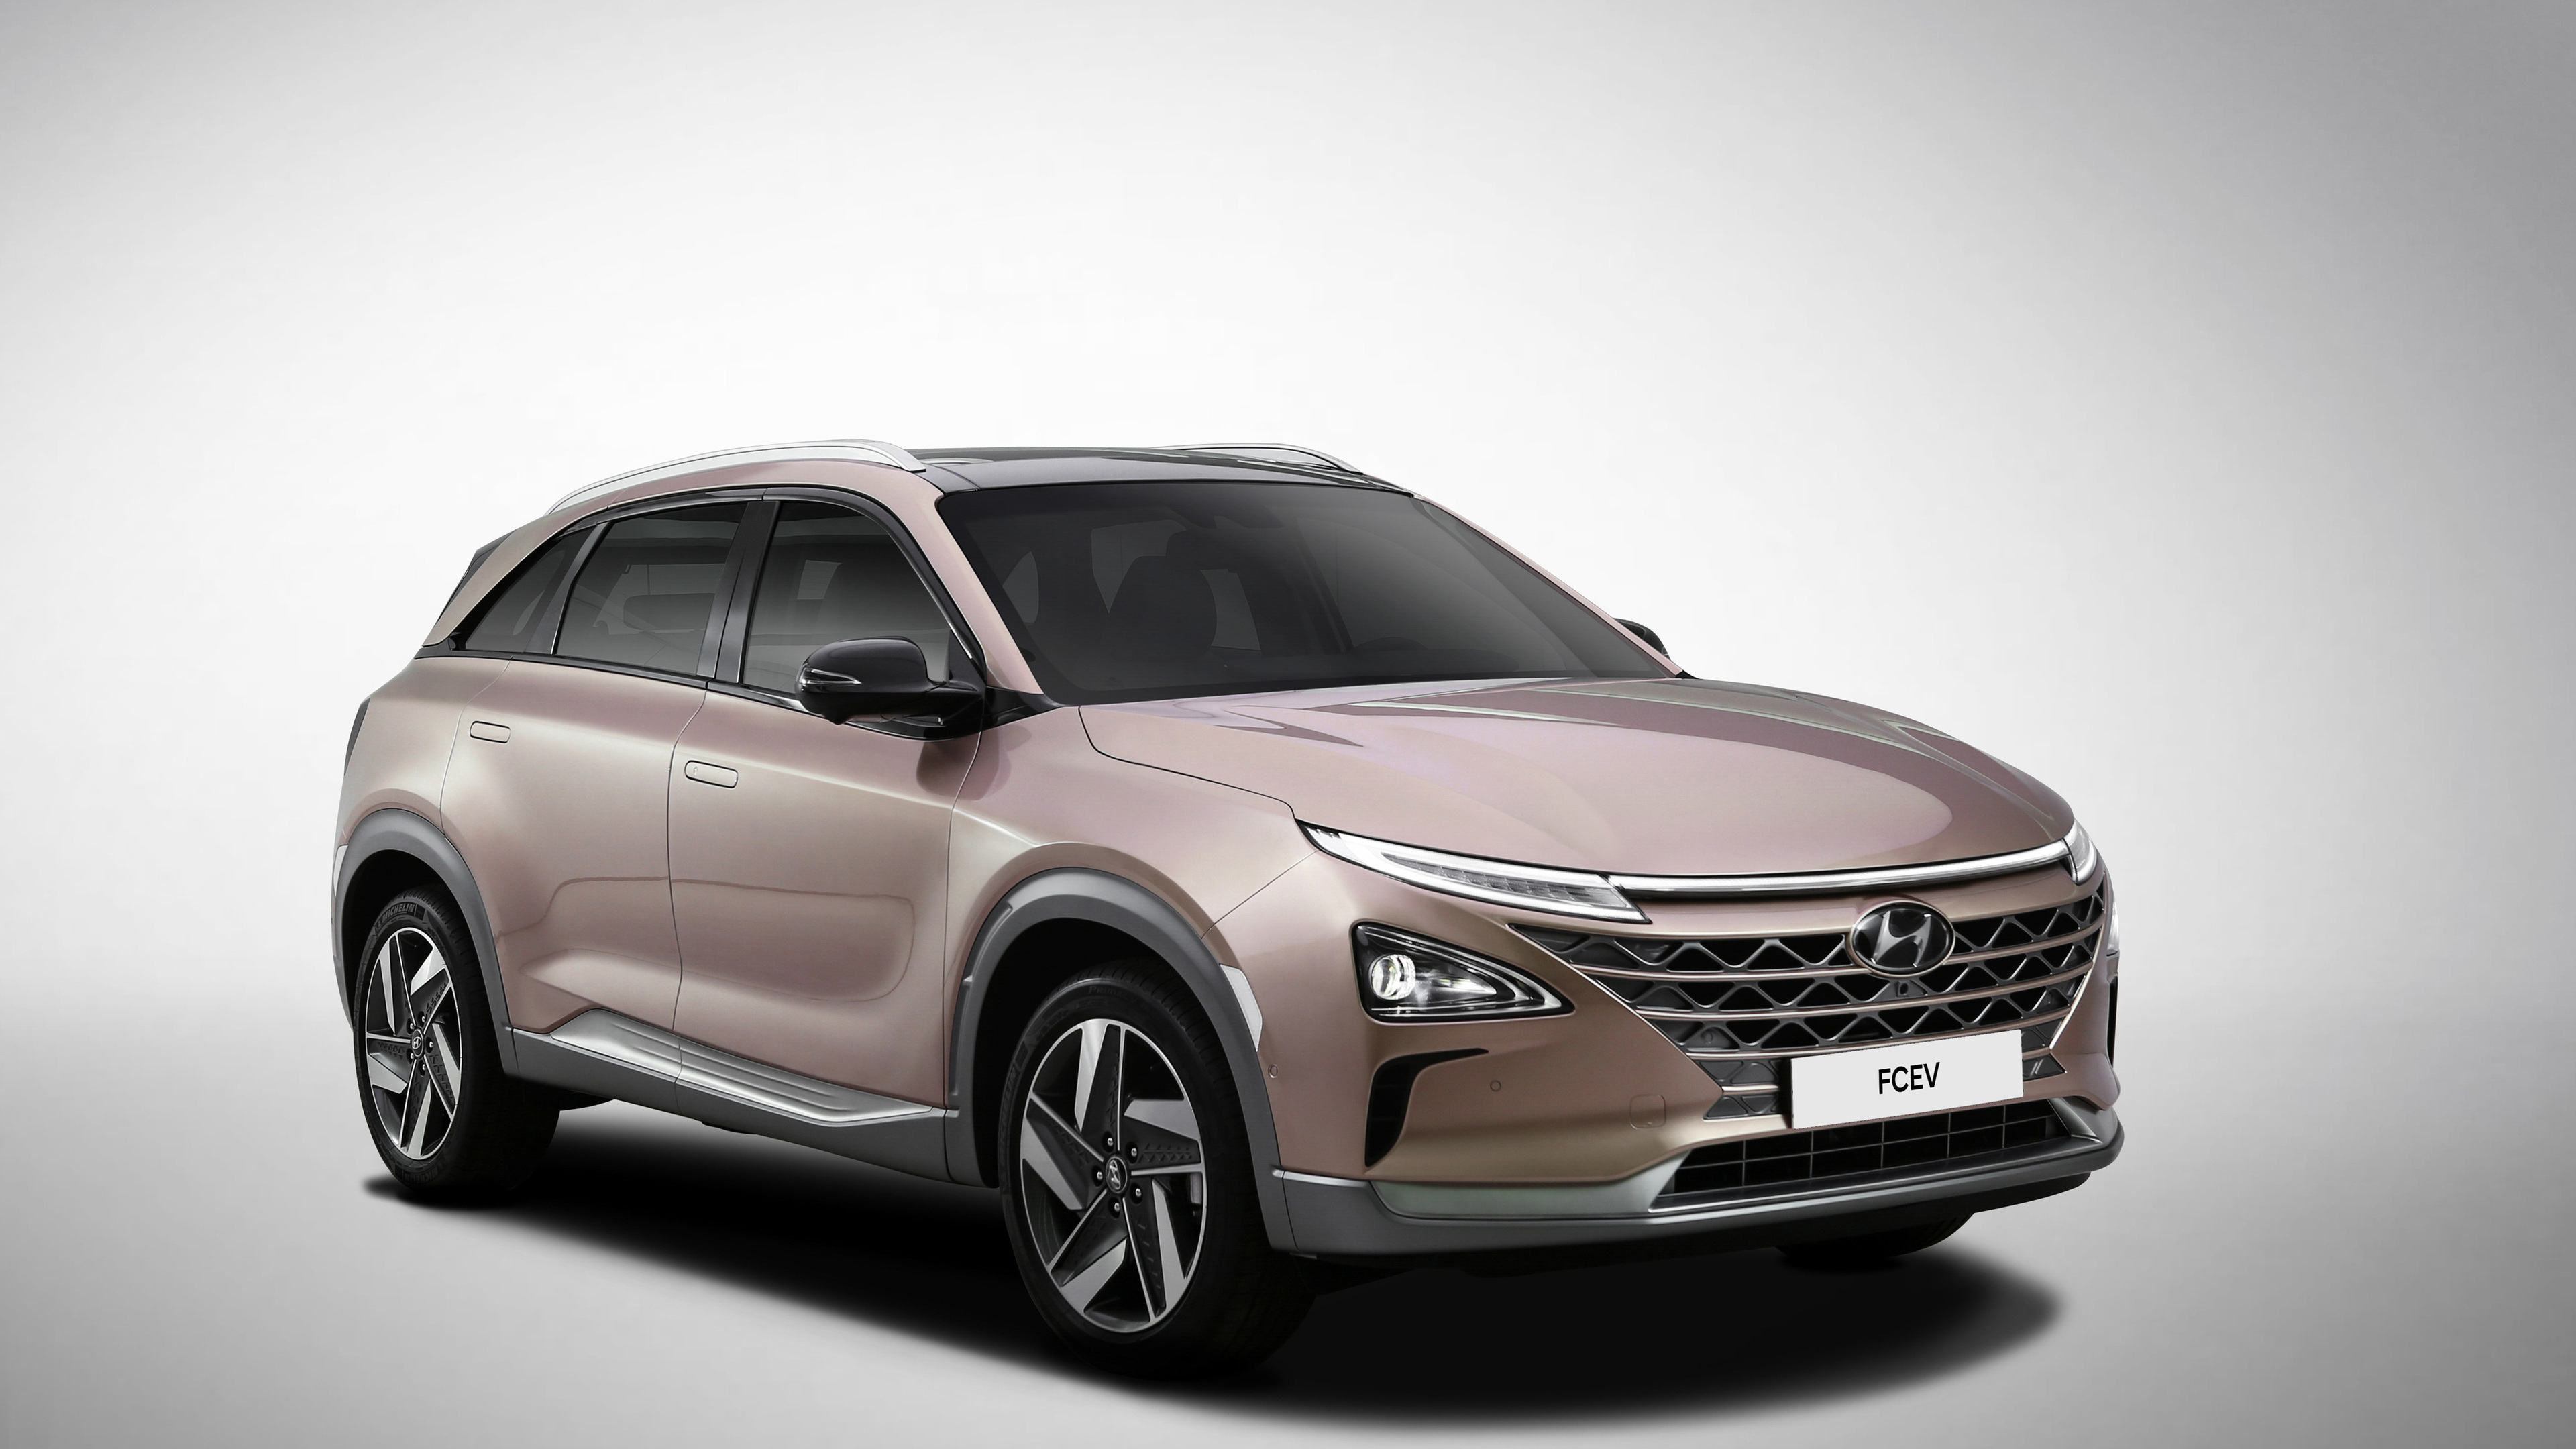 hyundai nexo 1539108991 - Hyundai Nexo - hyundai wallpapers, hyundai nexo wallpapers, hd-wallpapers, 4k-wallpapers, 2018 cars wallpapers